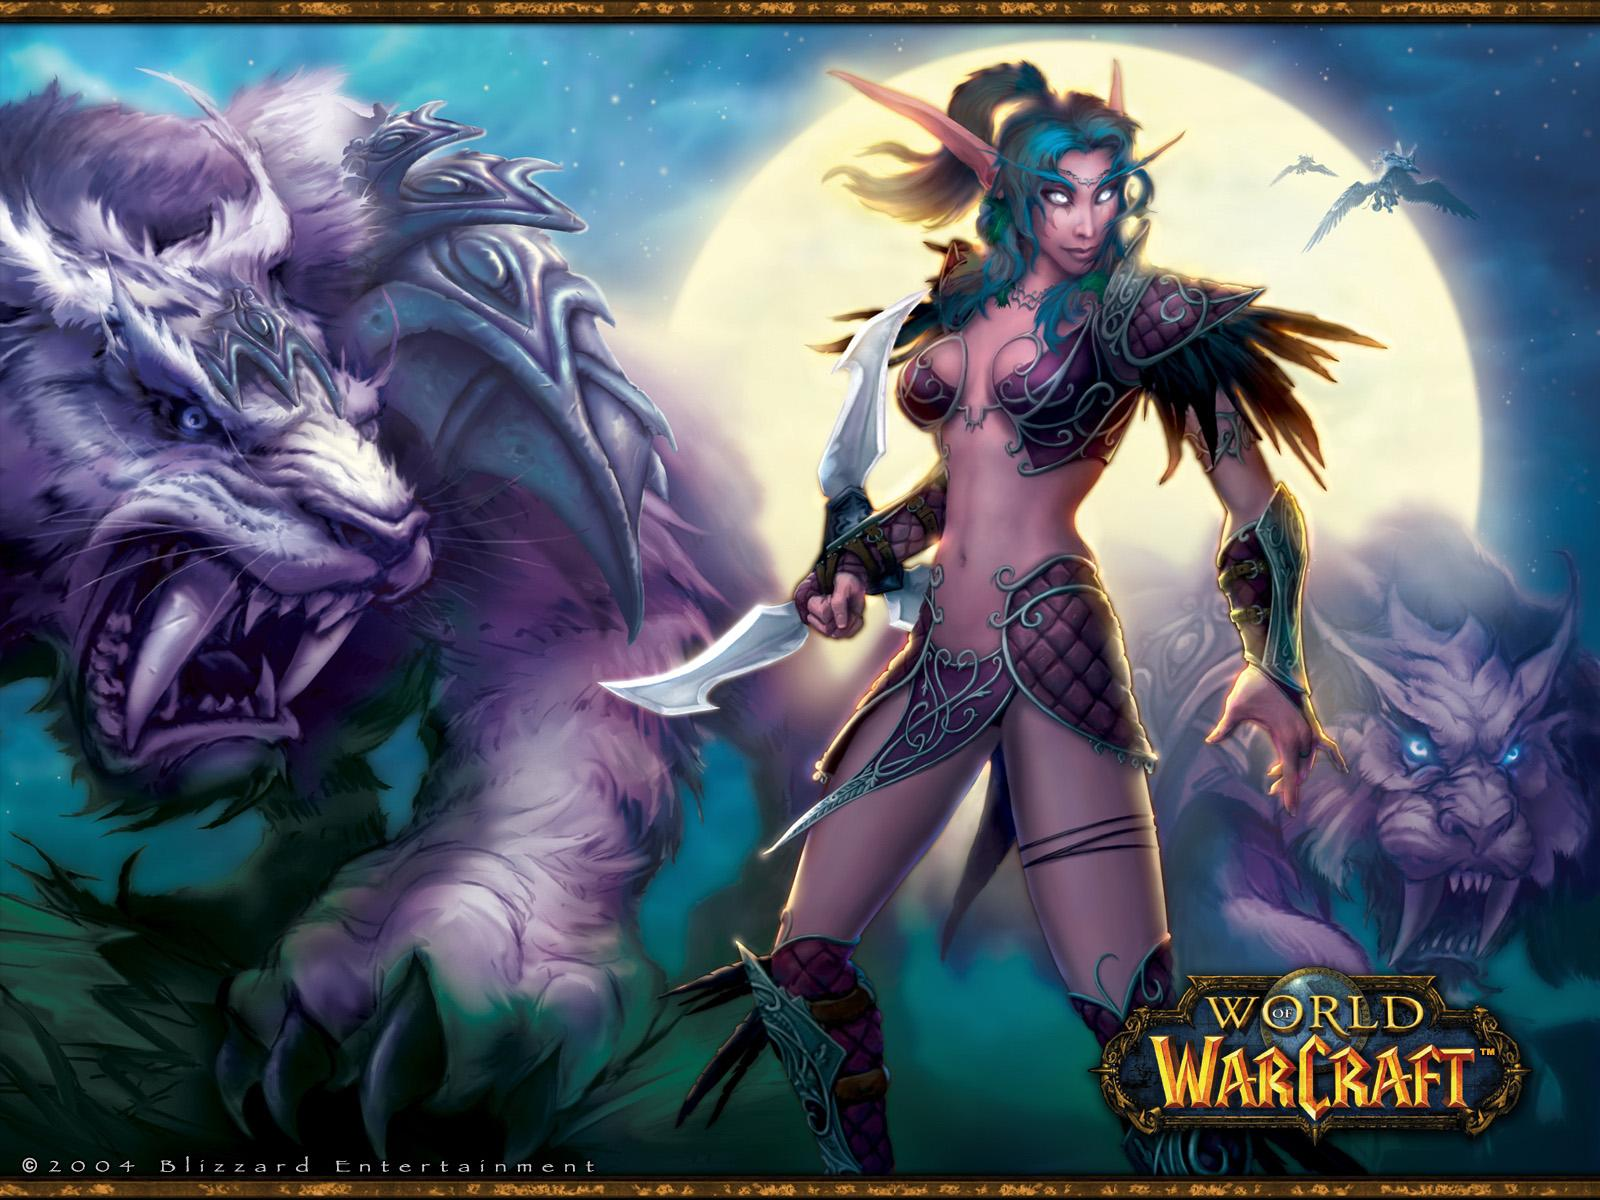 World of Warcraft Patch 4.0.1.12911 to 4.0.1.13164